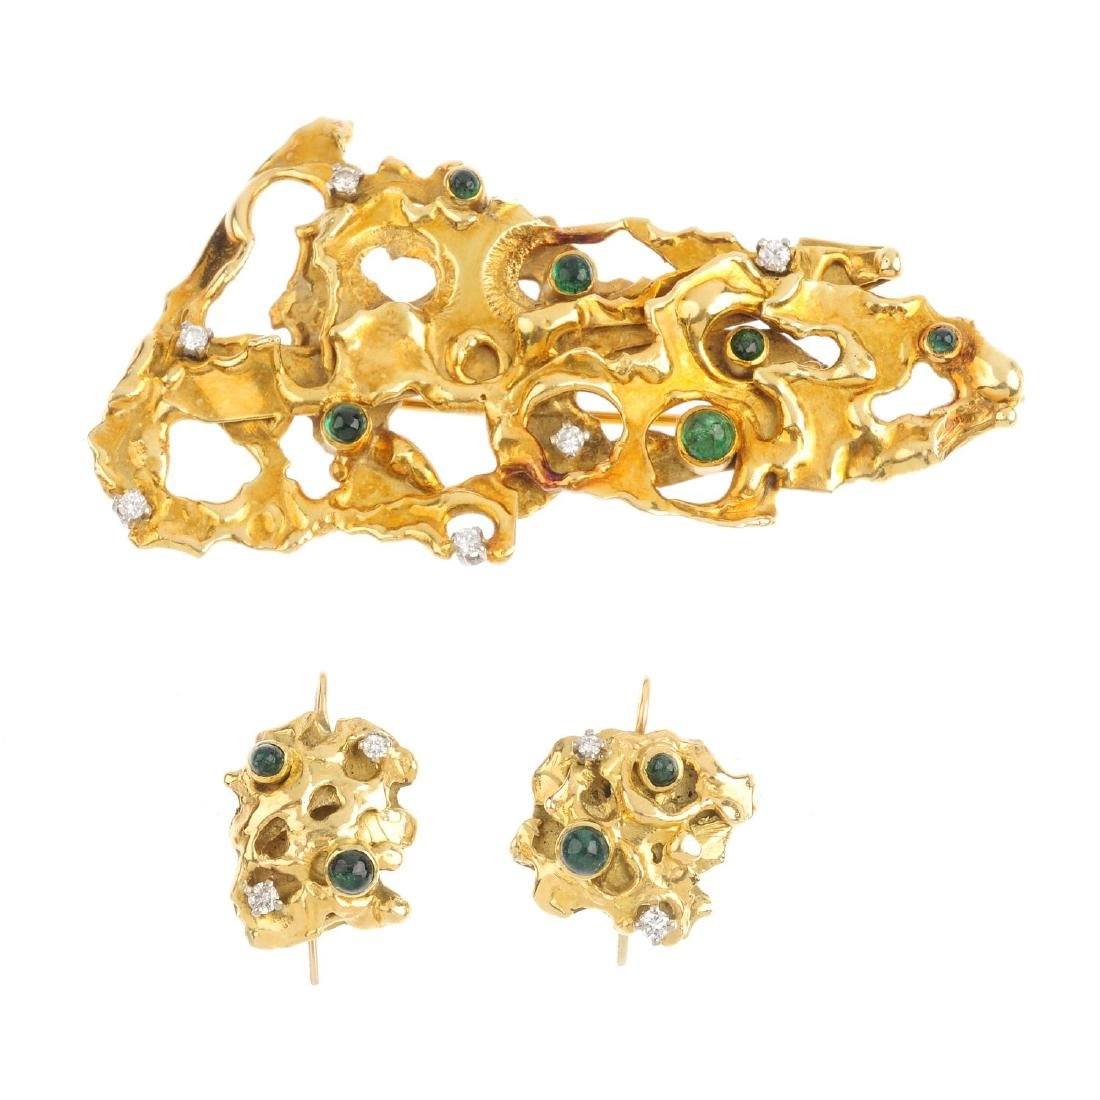 CHARLES DE TEMPLE - a 1960s 18ct gold diamond and